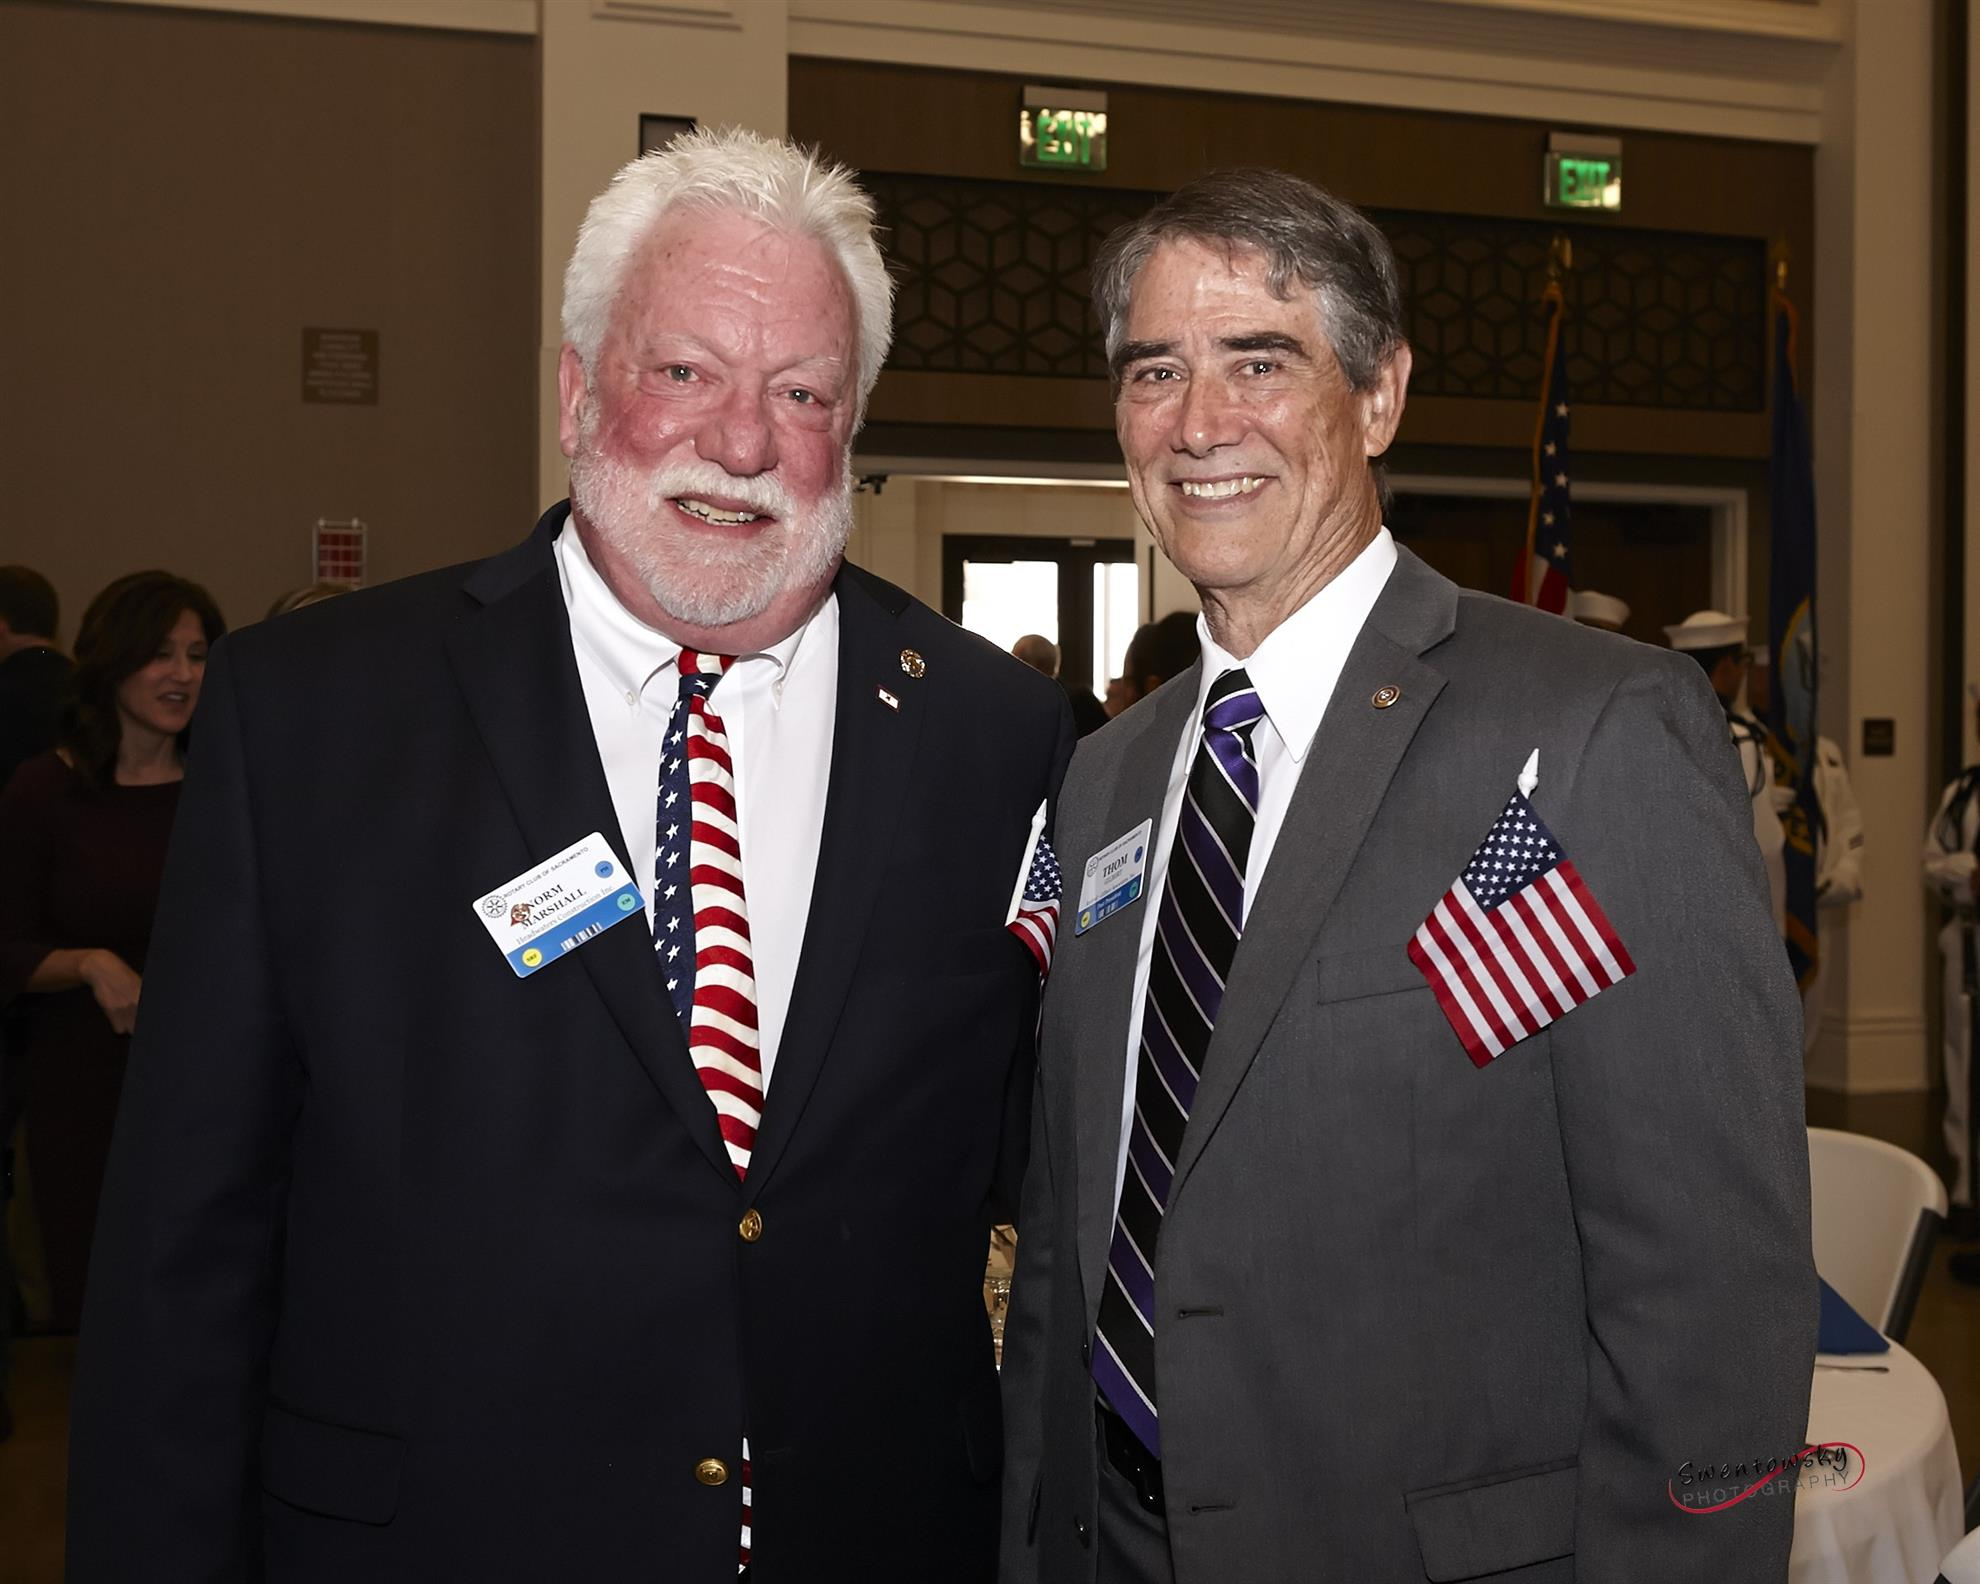 Stories Rotary Club Of Sacramento Rodeo Bottom Abigail Pants Navy L Ron Crane Dca Partners Highlighted The Navys Greatness Jackie Kirkwood Goodwin Cole Extolled Valor Marines Bruce Hester Colliers